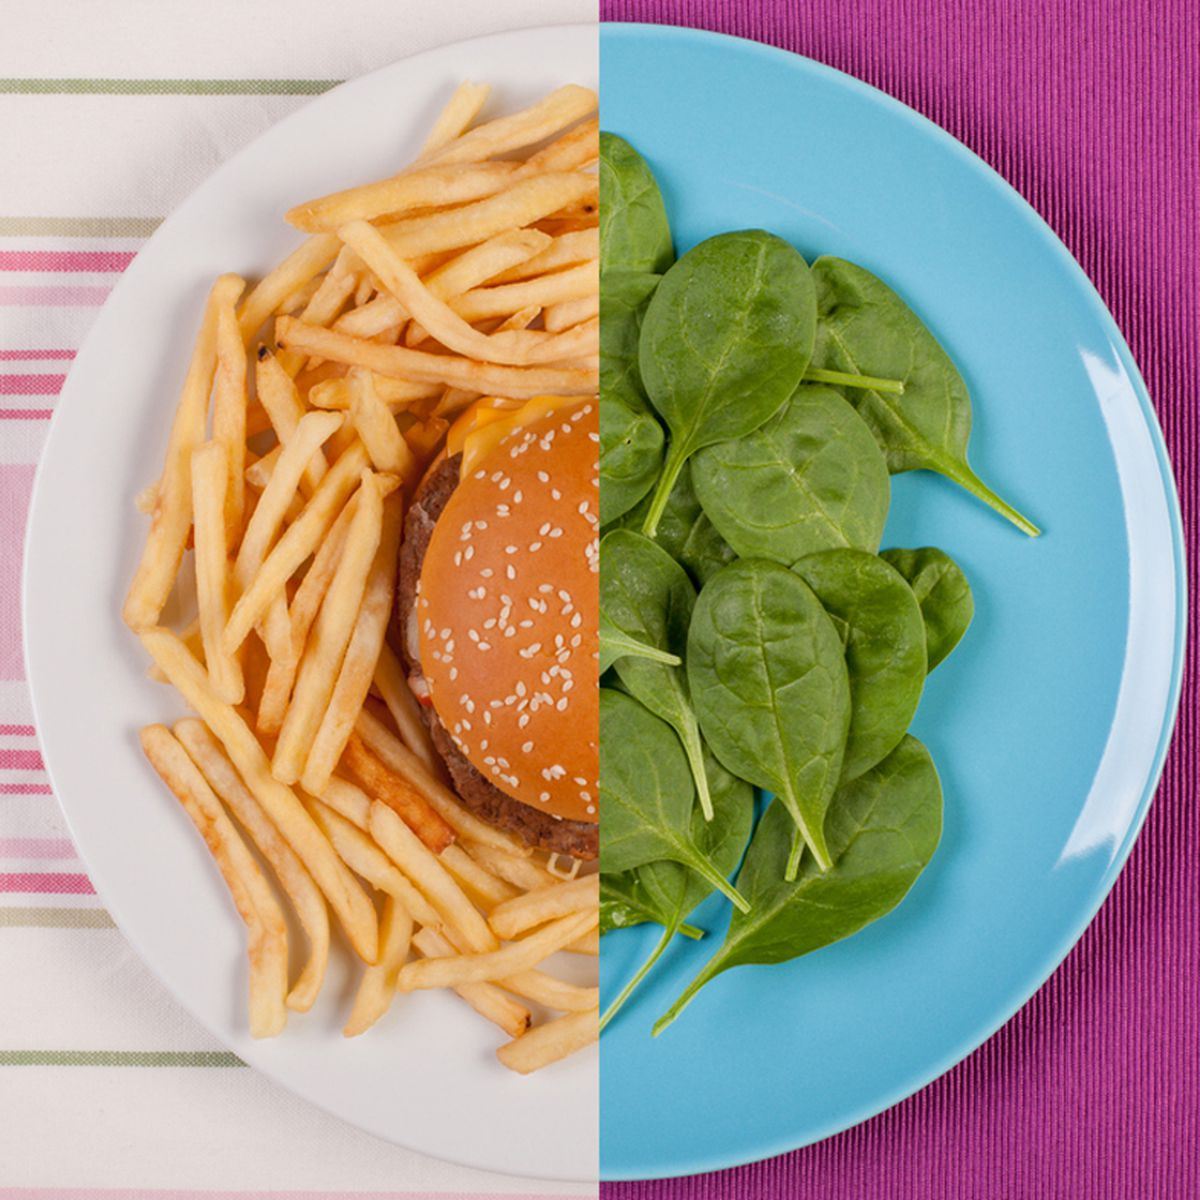 fast food meal calorie percentage to normal diet